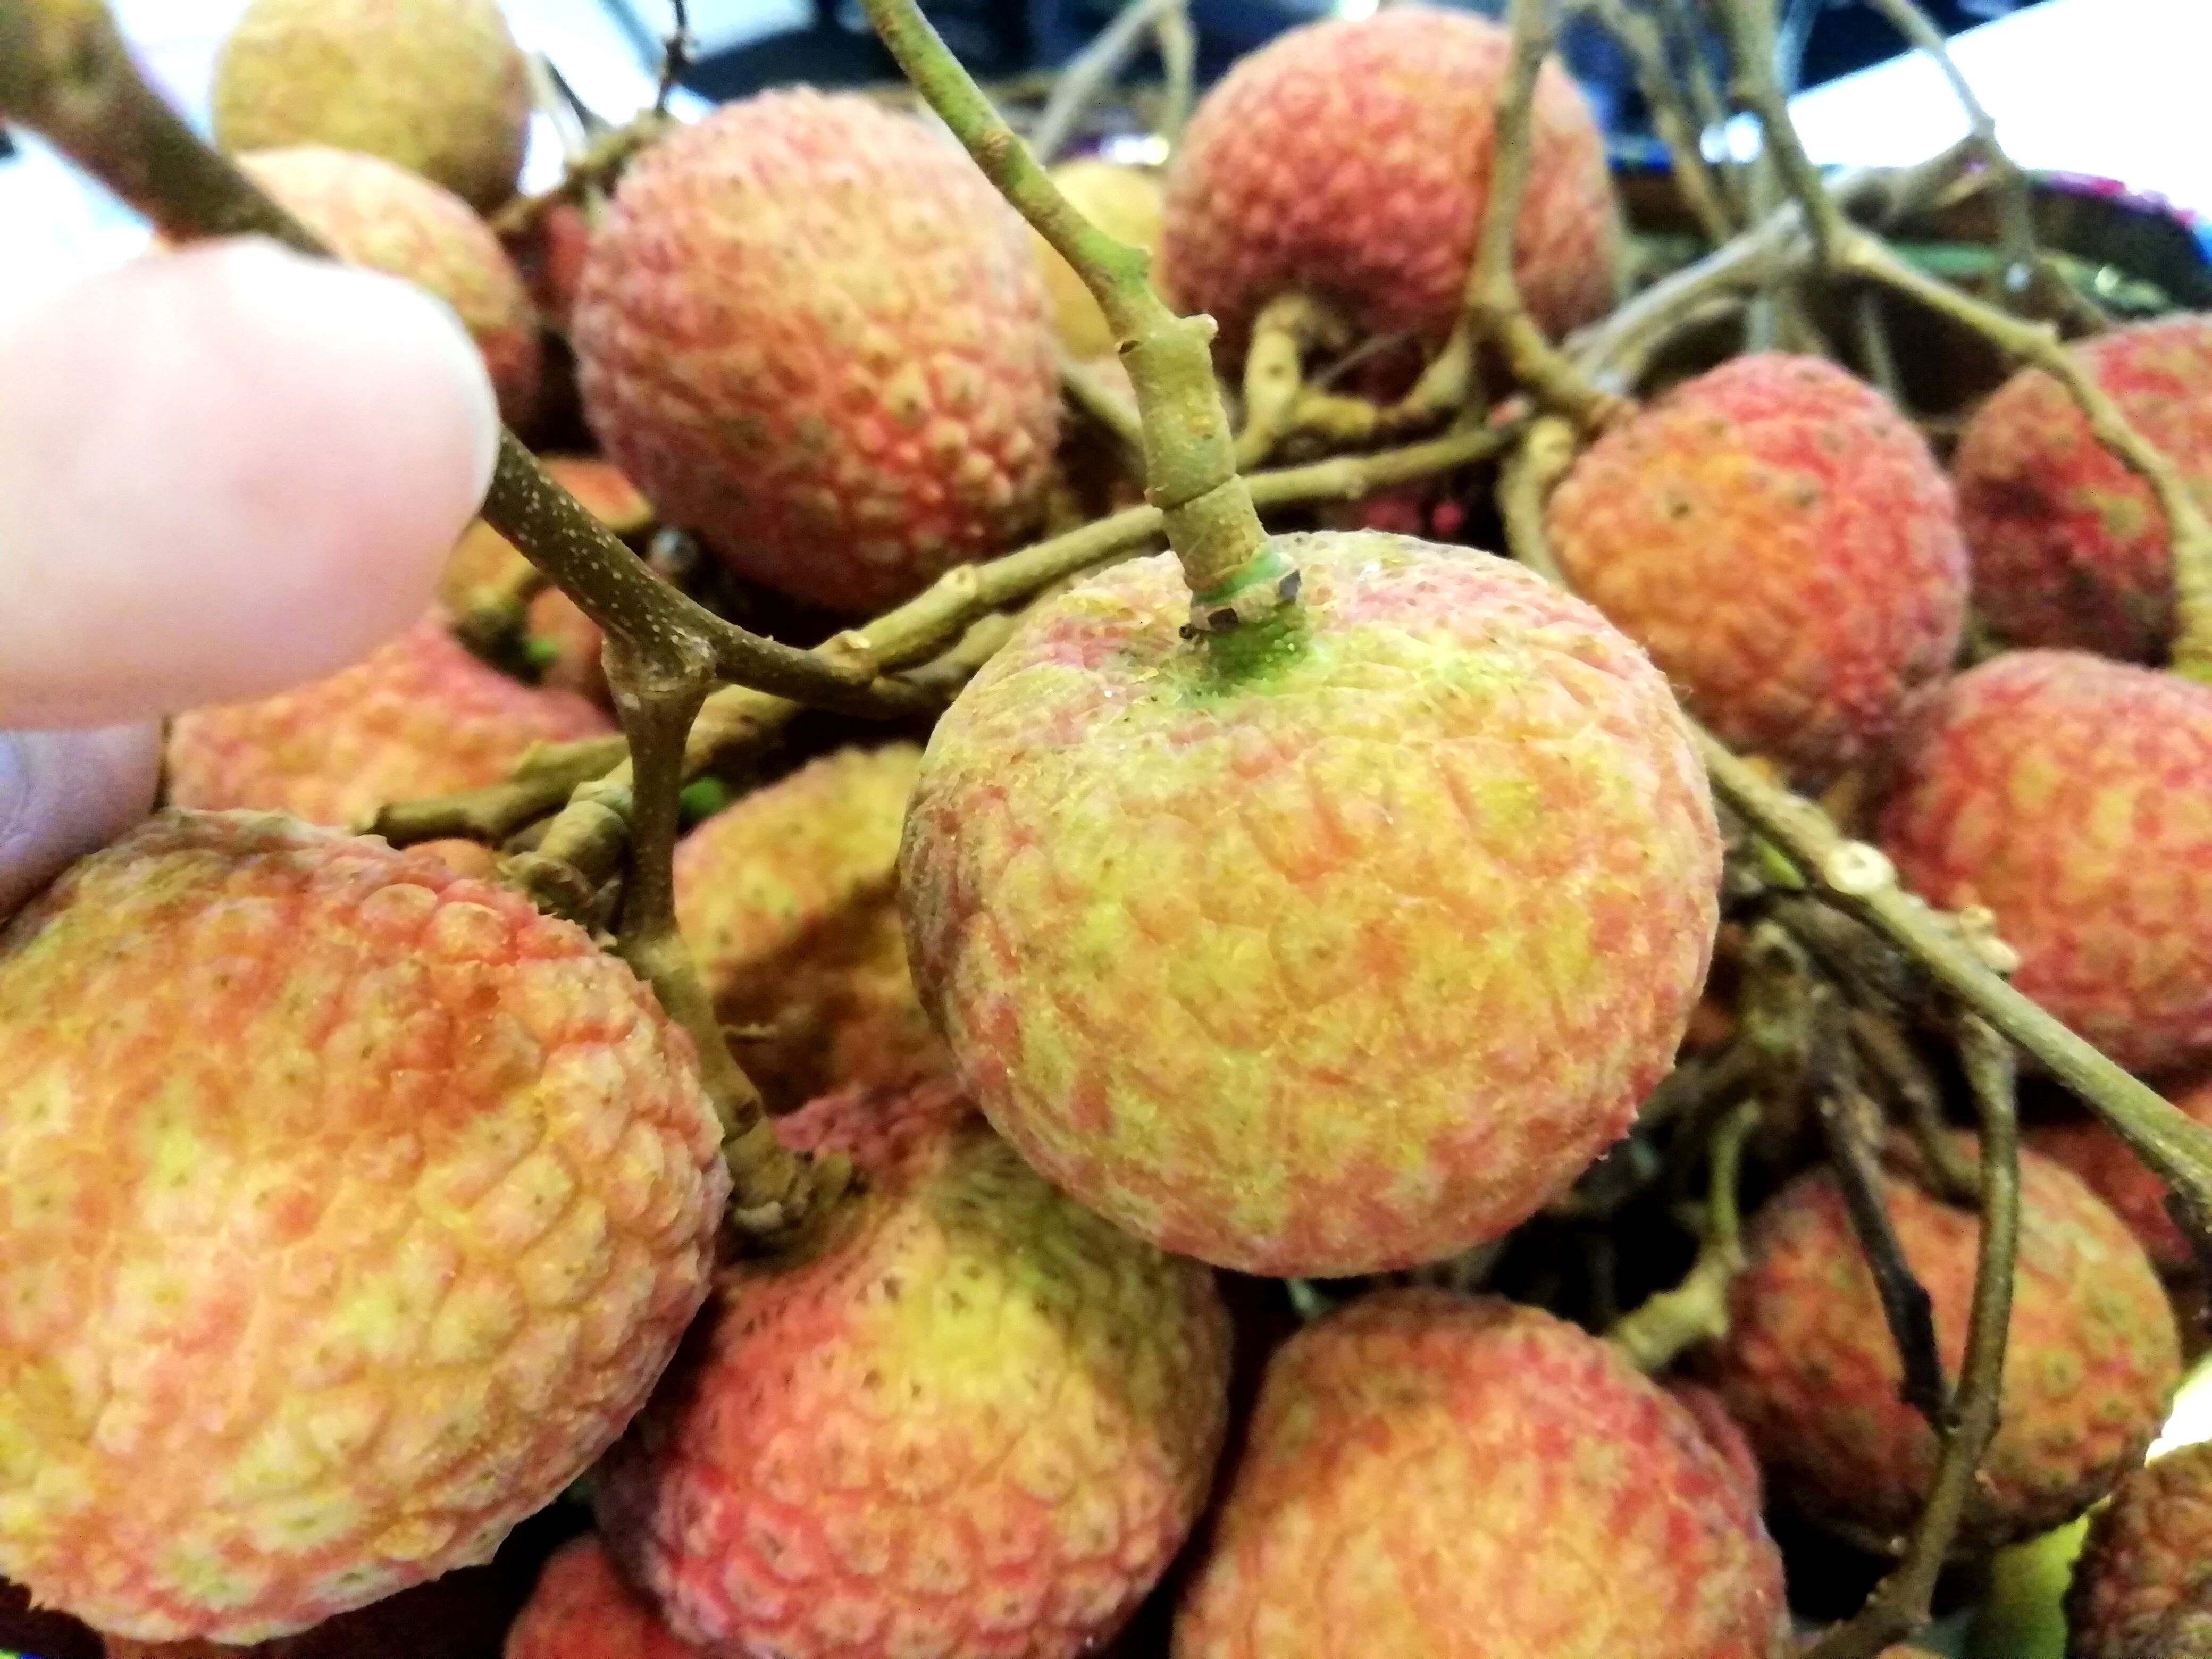 Panel Light Manufacturer KEOU- Delicious Litchi